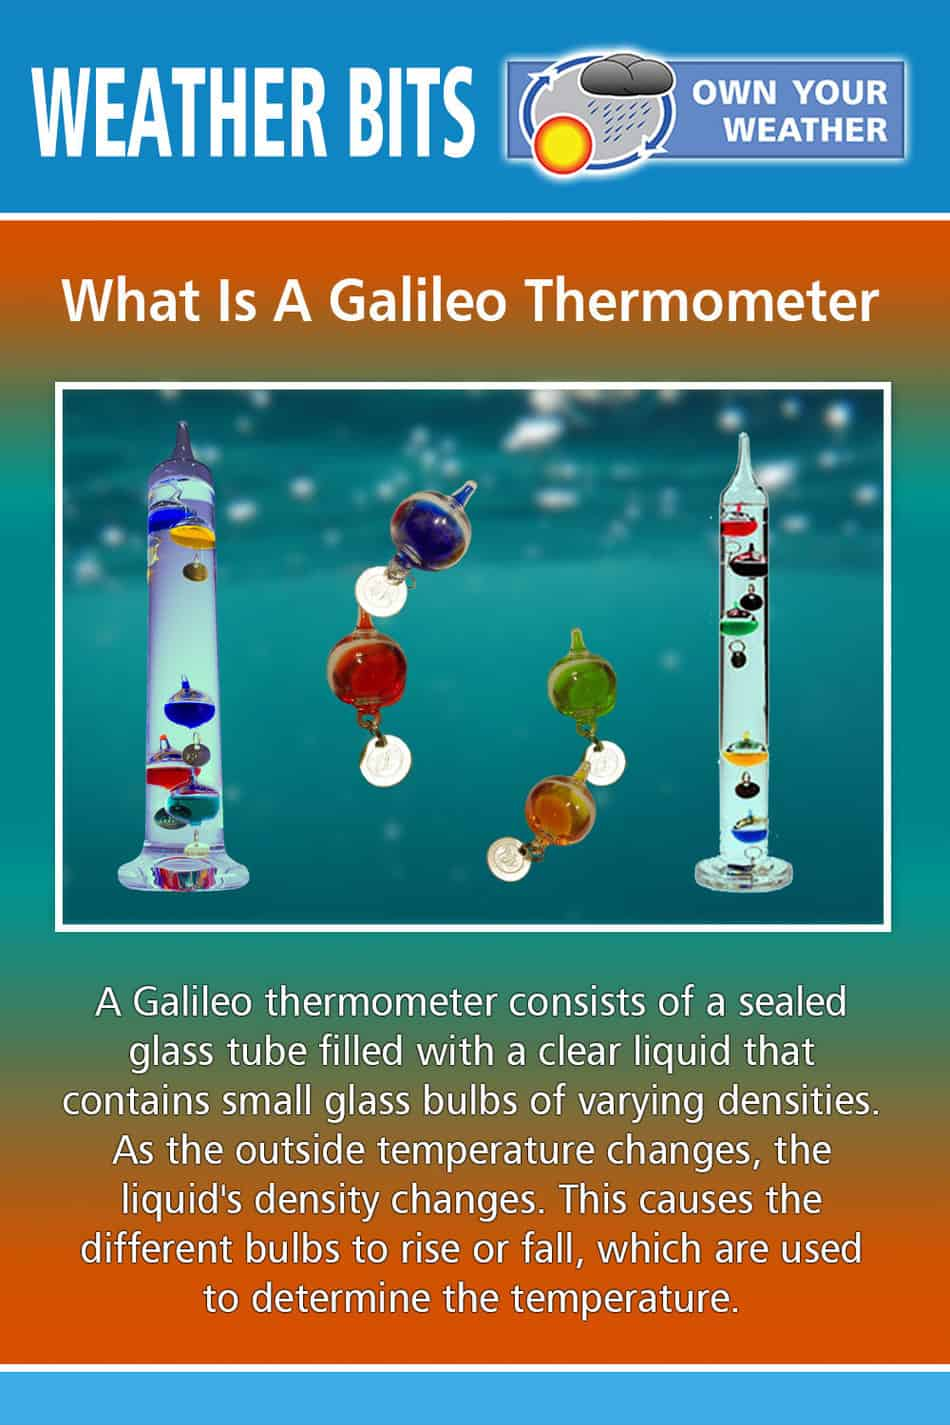 What Is A Galileo Thermometer